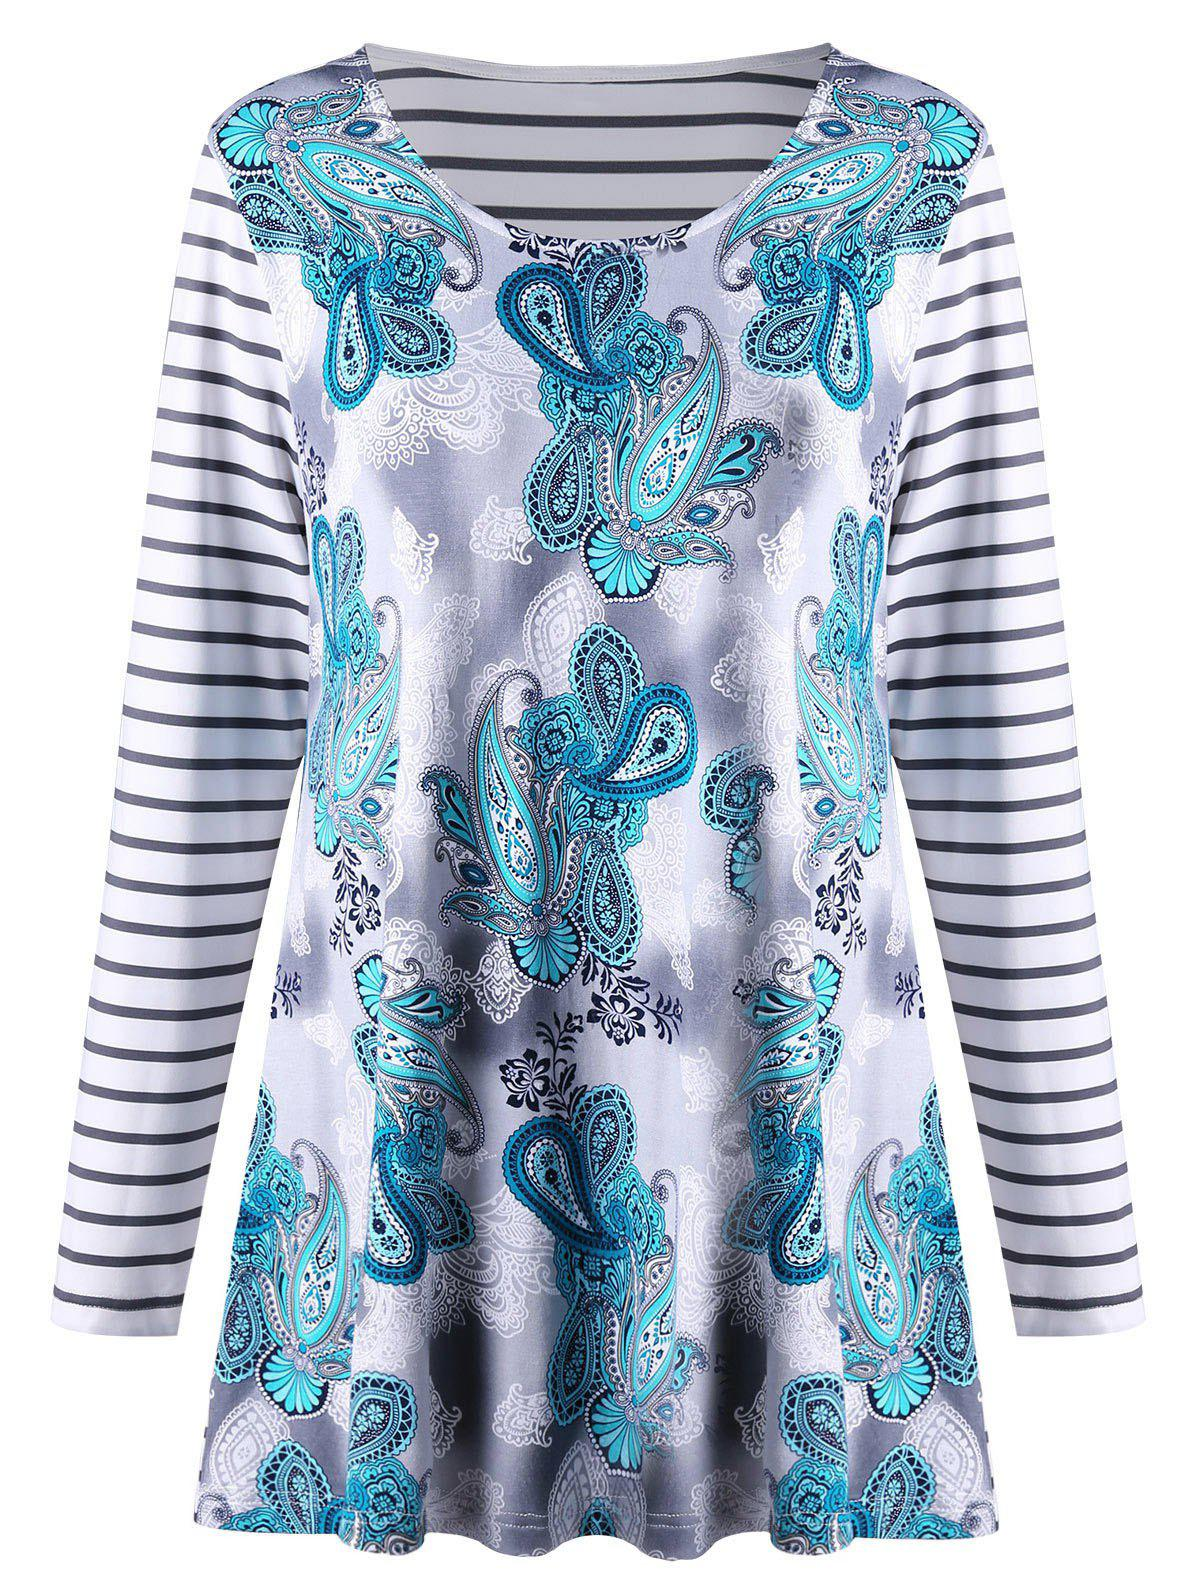 Plus Size Long Sleeve Paisley Striped TopWOMEN<br><br>Size: XL; Color: STRIPE; Material: Polyester,Spandex; Shirt Length: Long; Sleeve Length: Full; Collar: Scoop Neck; Style: Casual; Season: Fall,Spring; Pattern Type: Paisley,Striped; Weight: 0.3000kg; Package Contents: 1 x T-shirt;